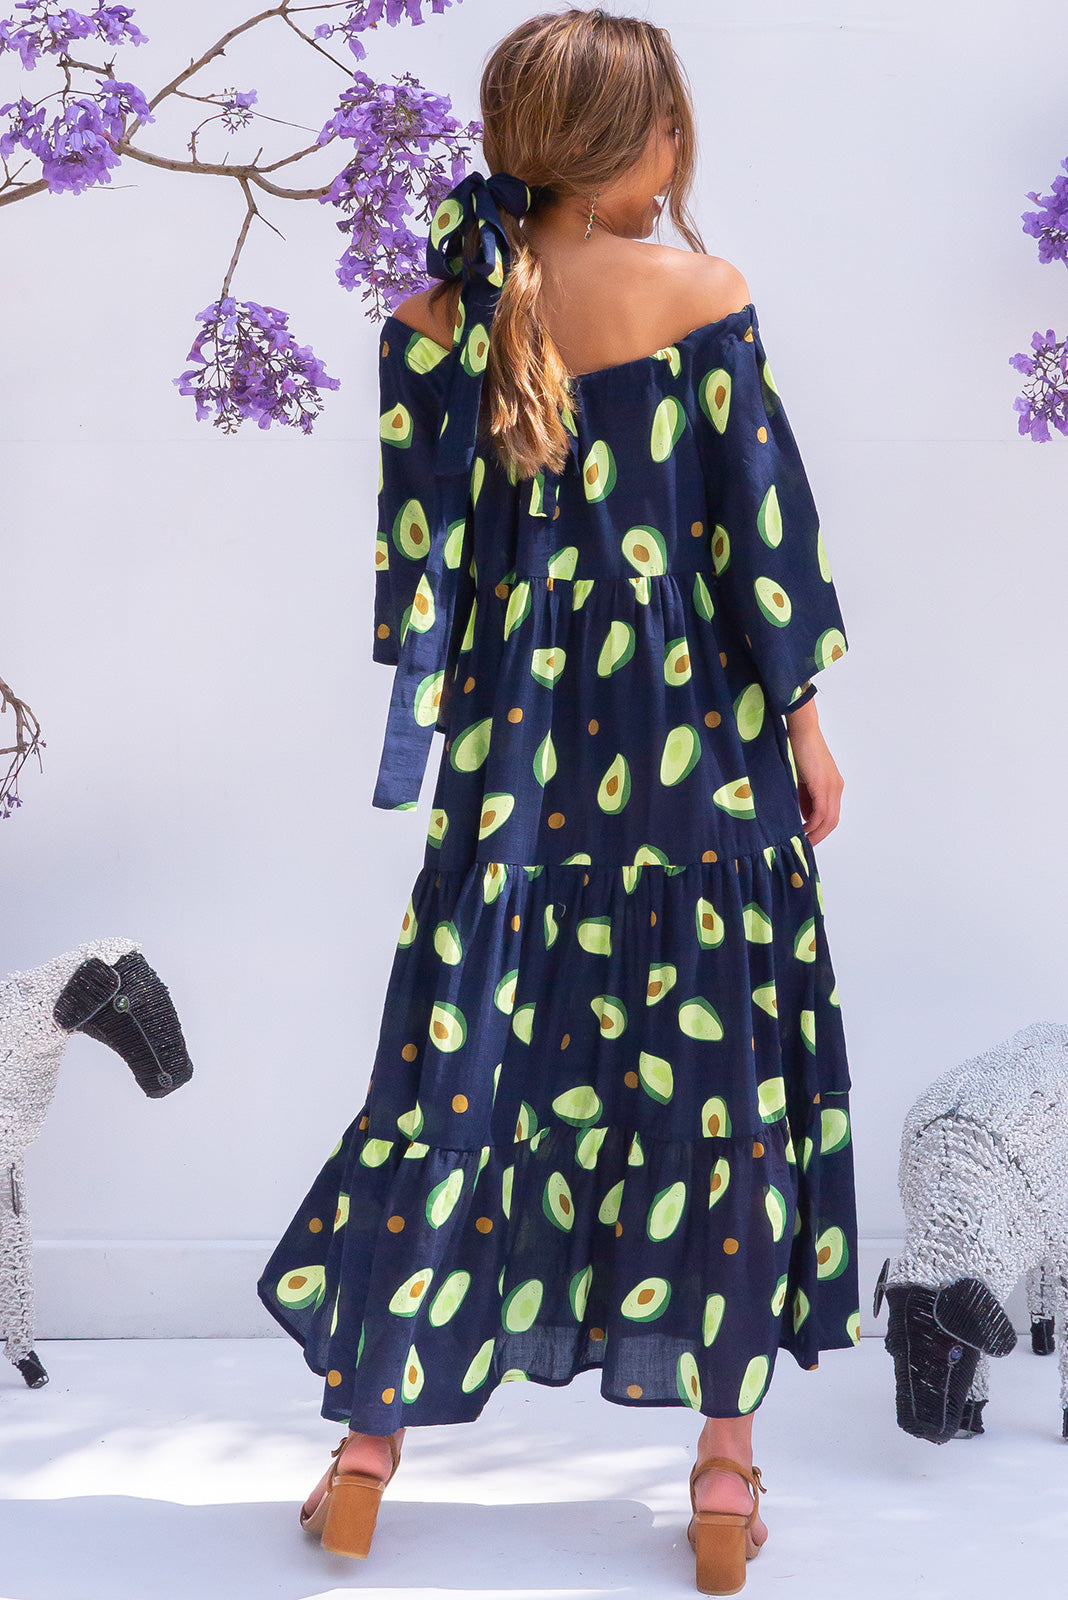 Lulu Liberty Avo Navy Maxi Swing Dress avocado print retro cotton design with pockets and off the shoulder cut.